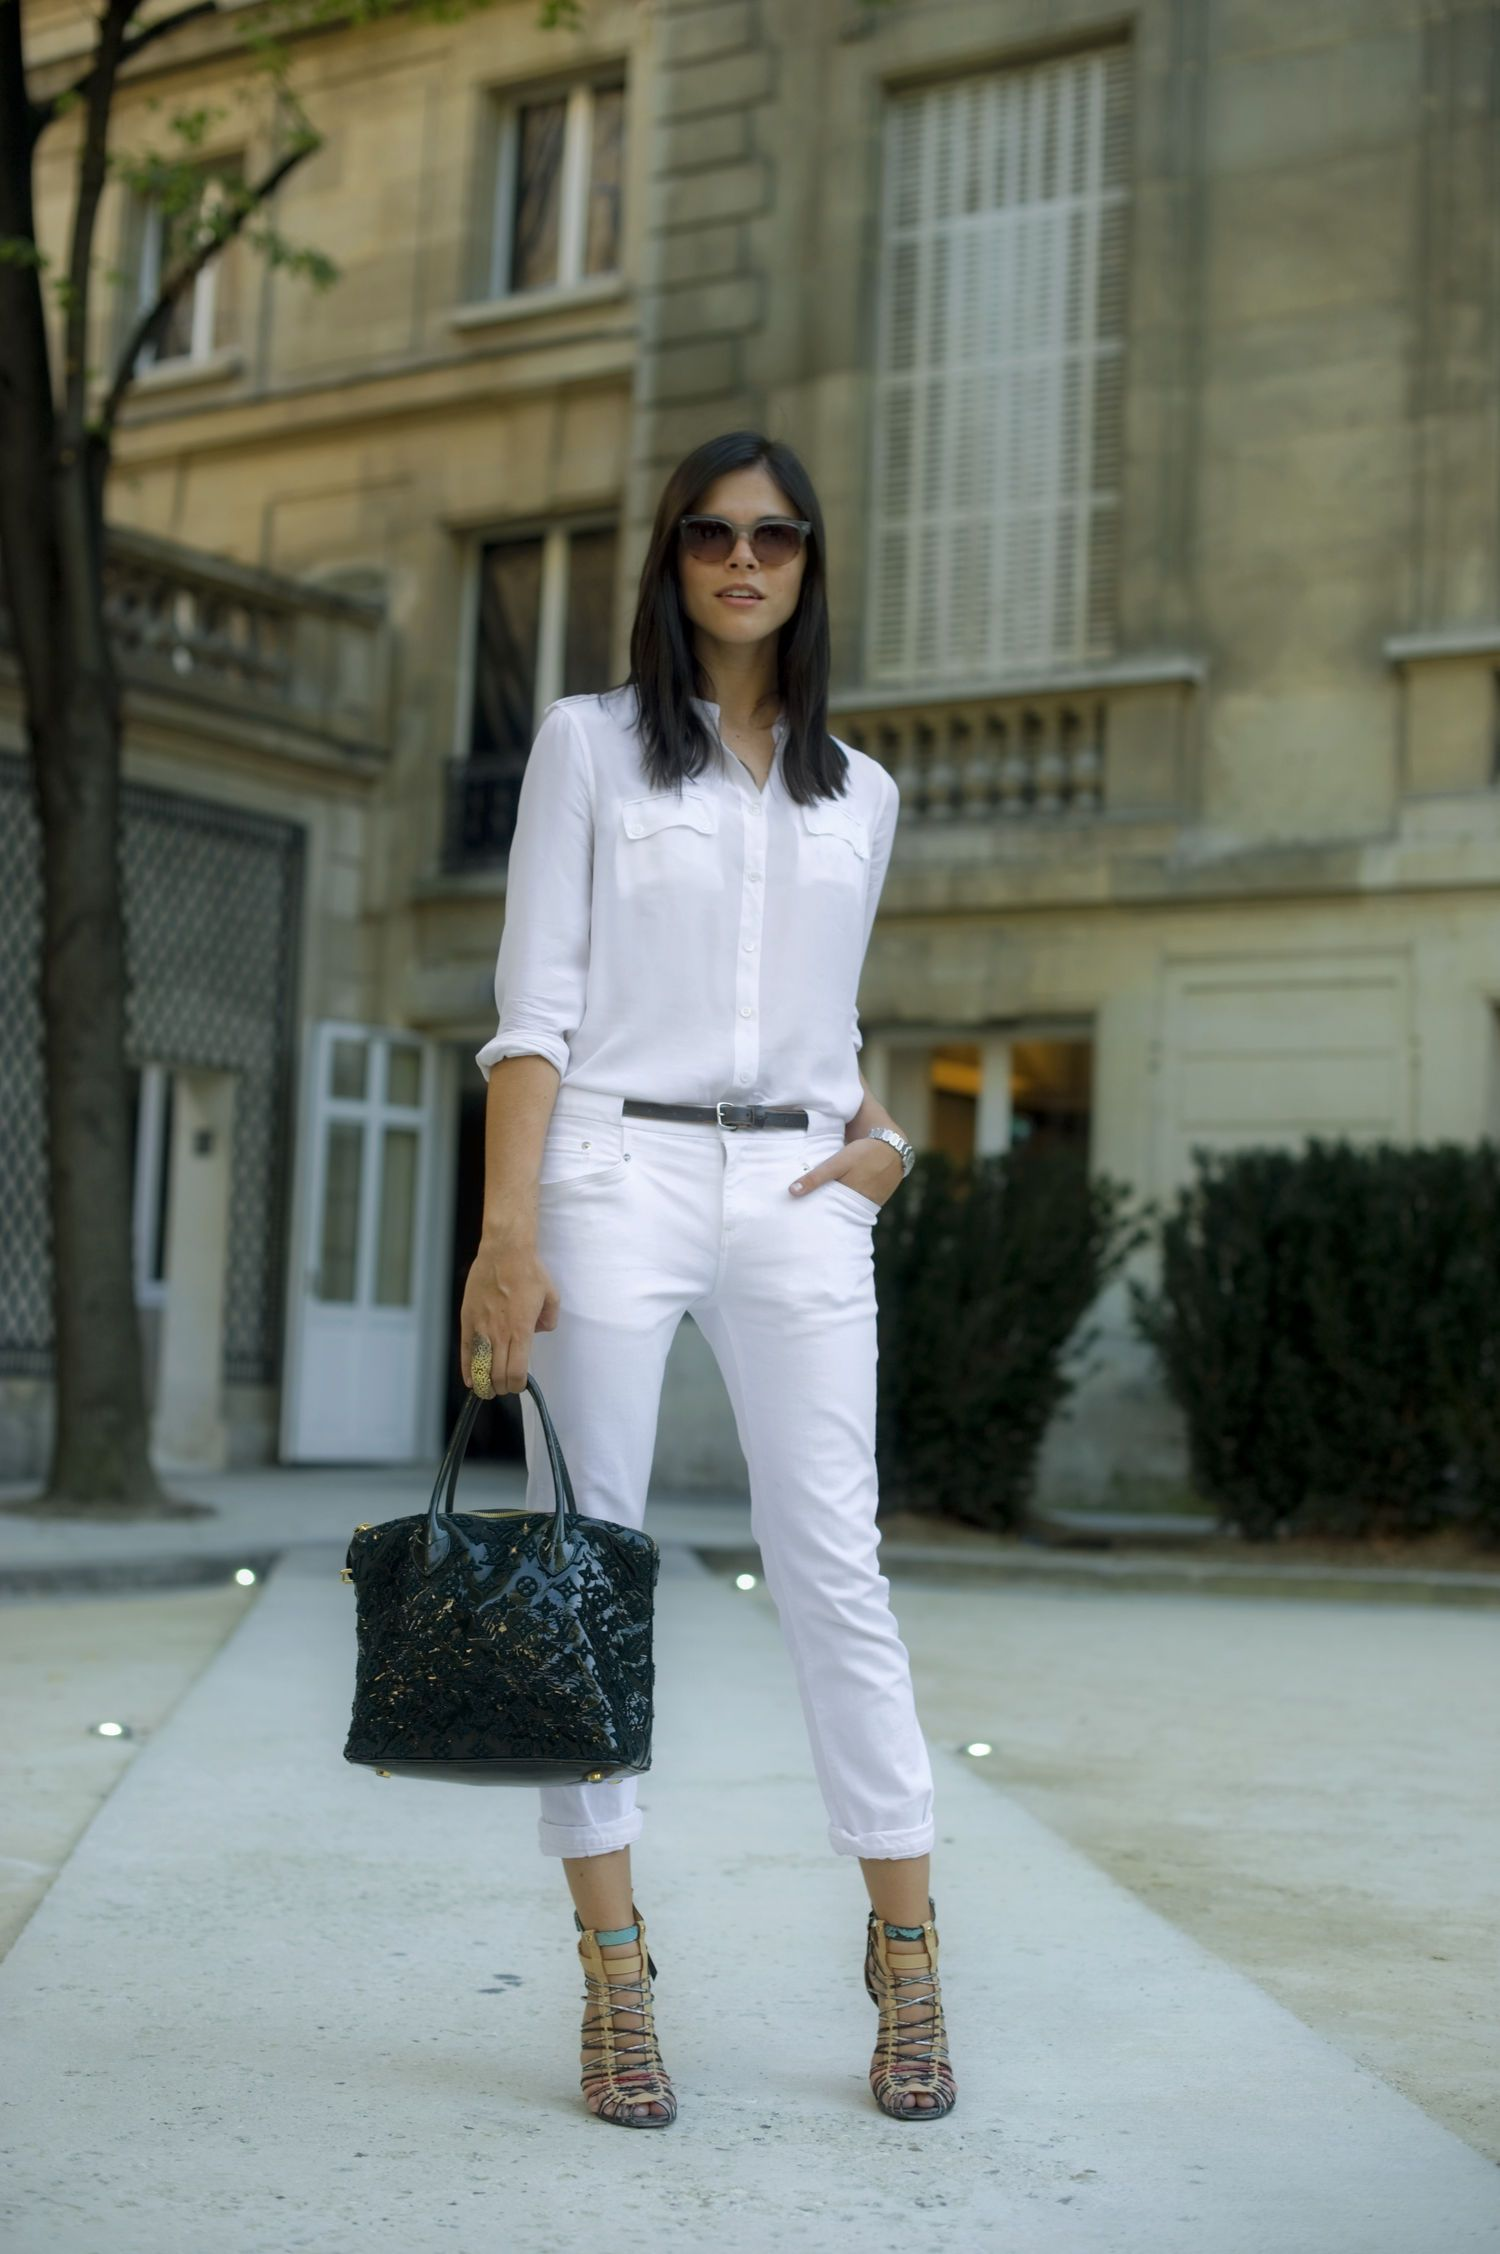 White Jeans, a White Blouse, and Brown Sandals